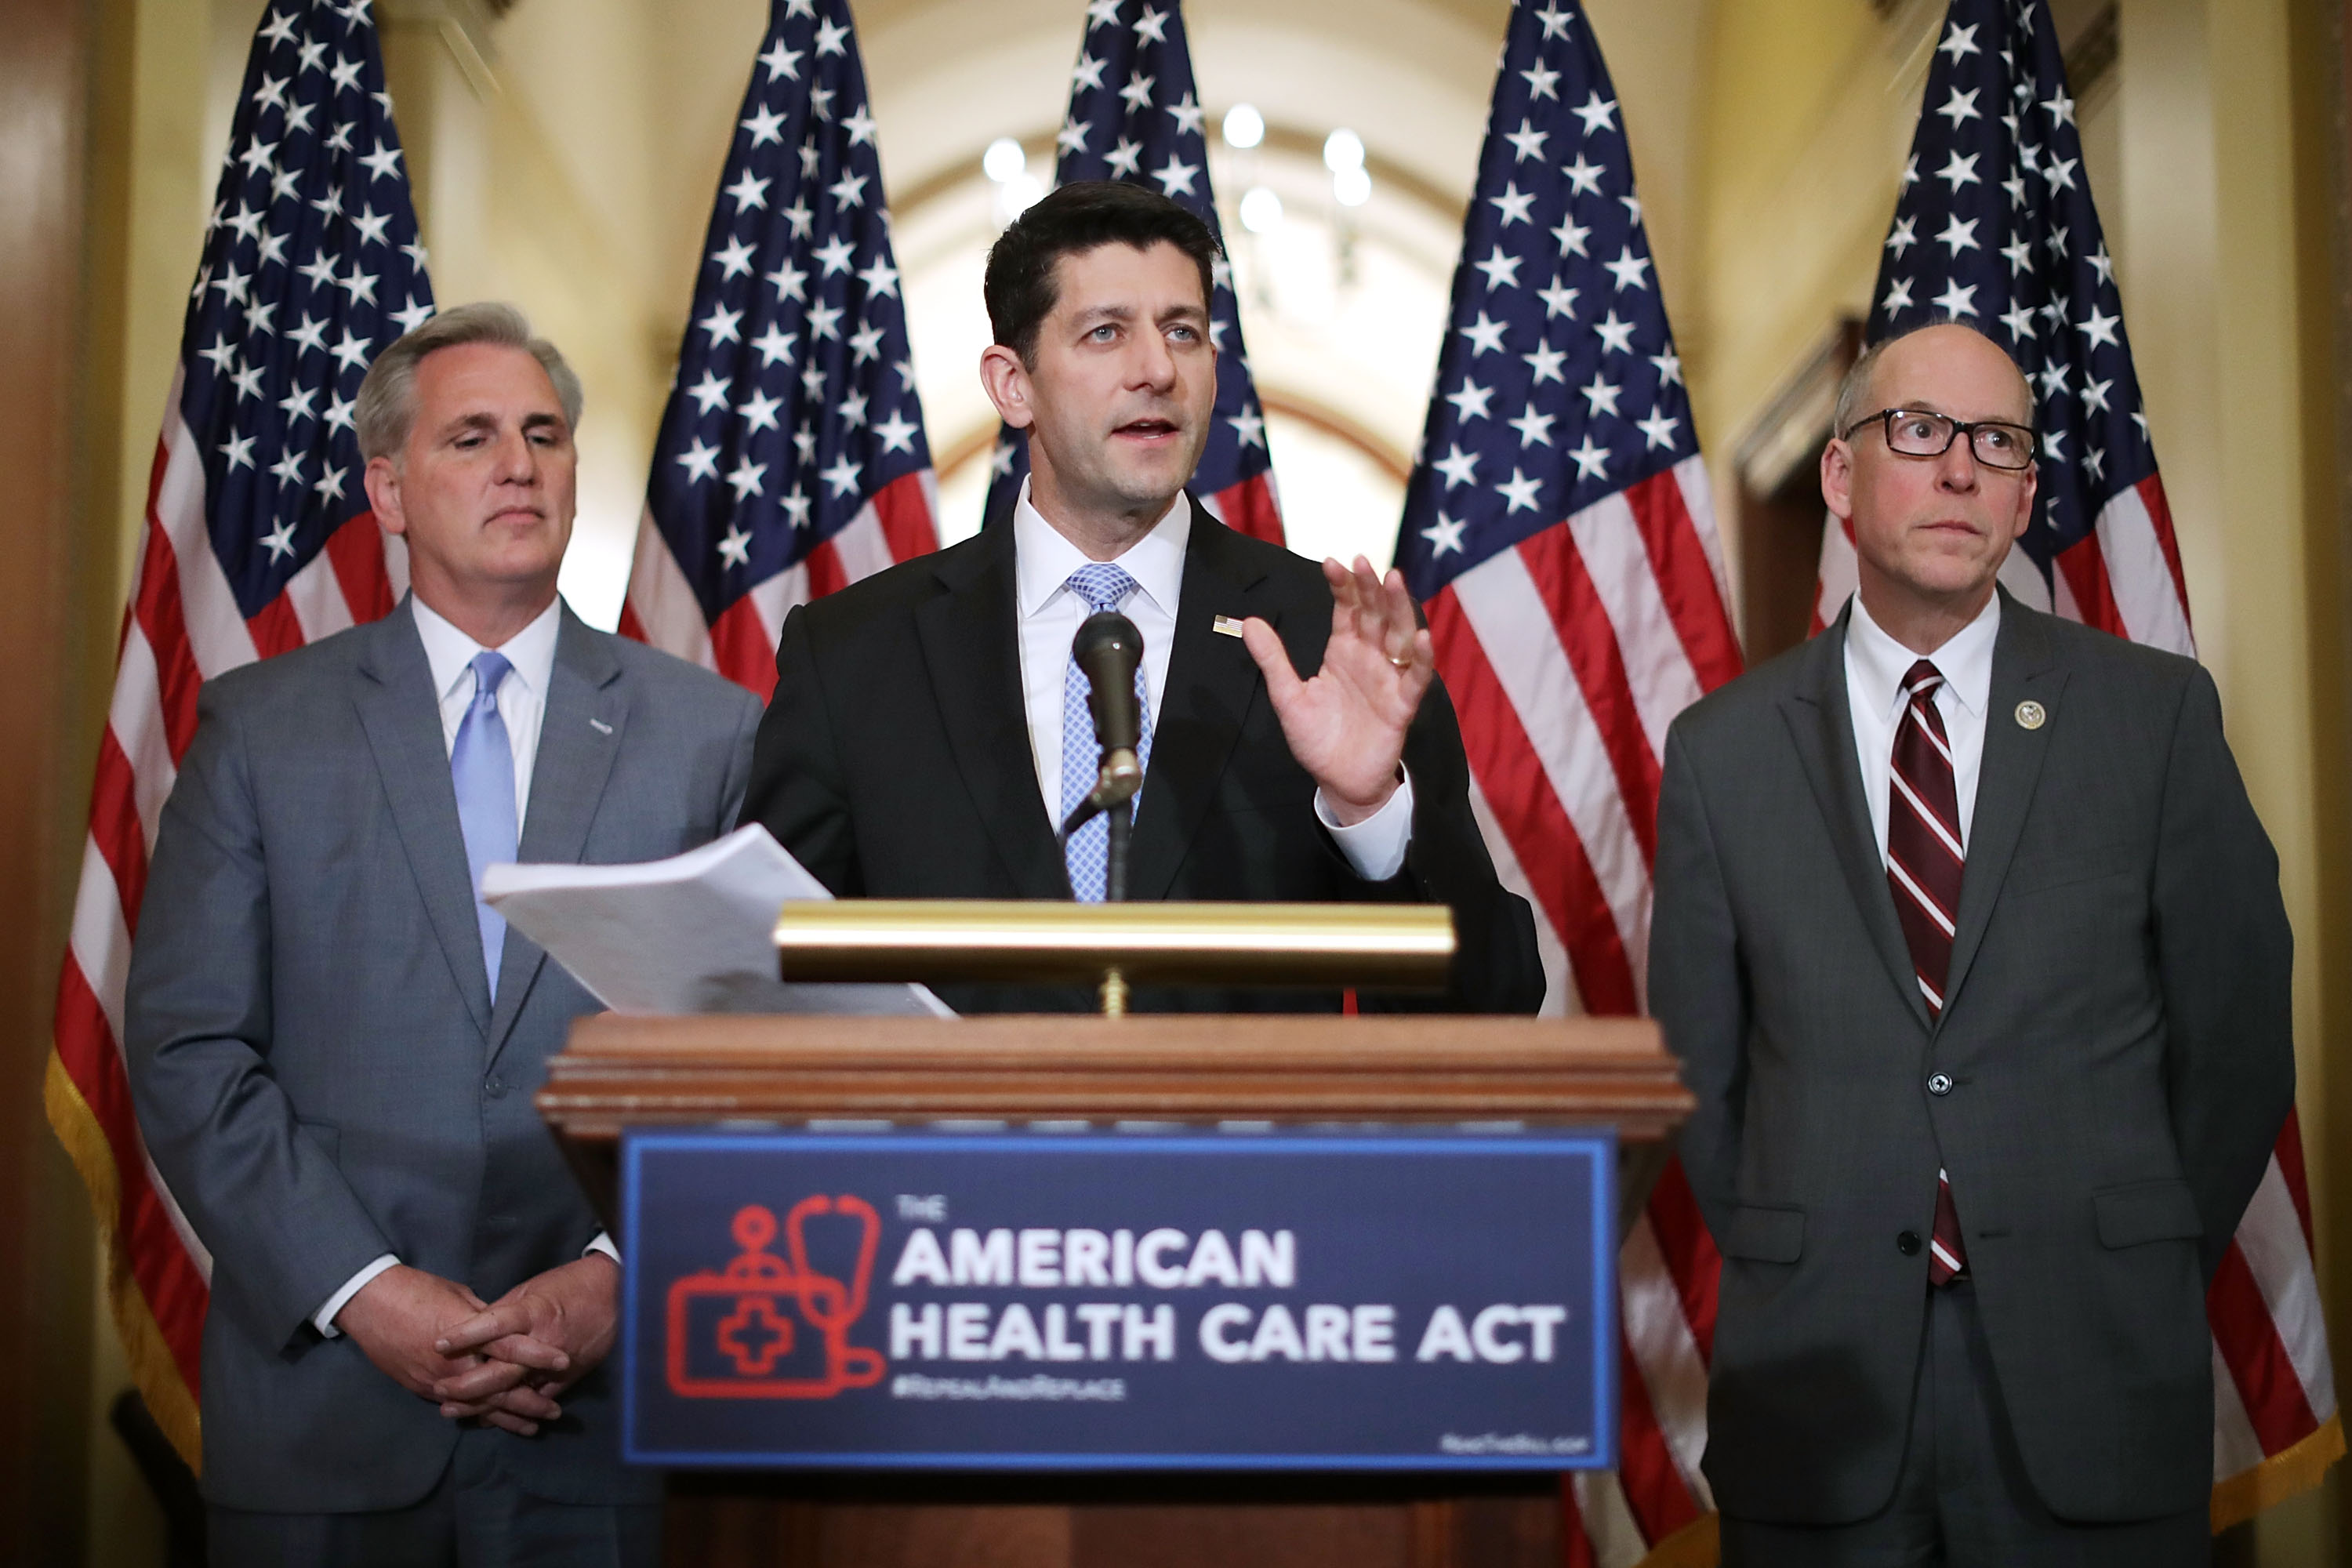 Speaker of the House Paul Ryan (C) answers questions about the House GOP's new American Health Care Act with Rep. Kevin McCarthy (L) and Rep. Greg Walden in Washington on March 7. (Chip Somodevilla/Getty Images)